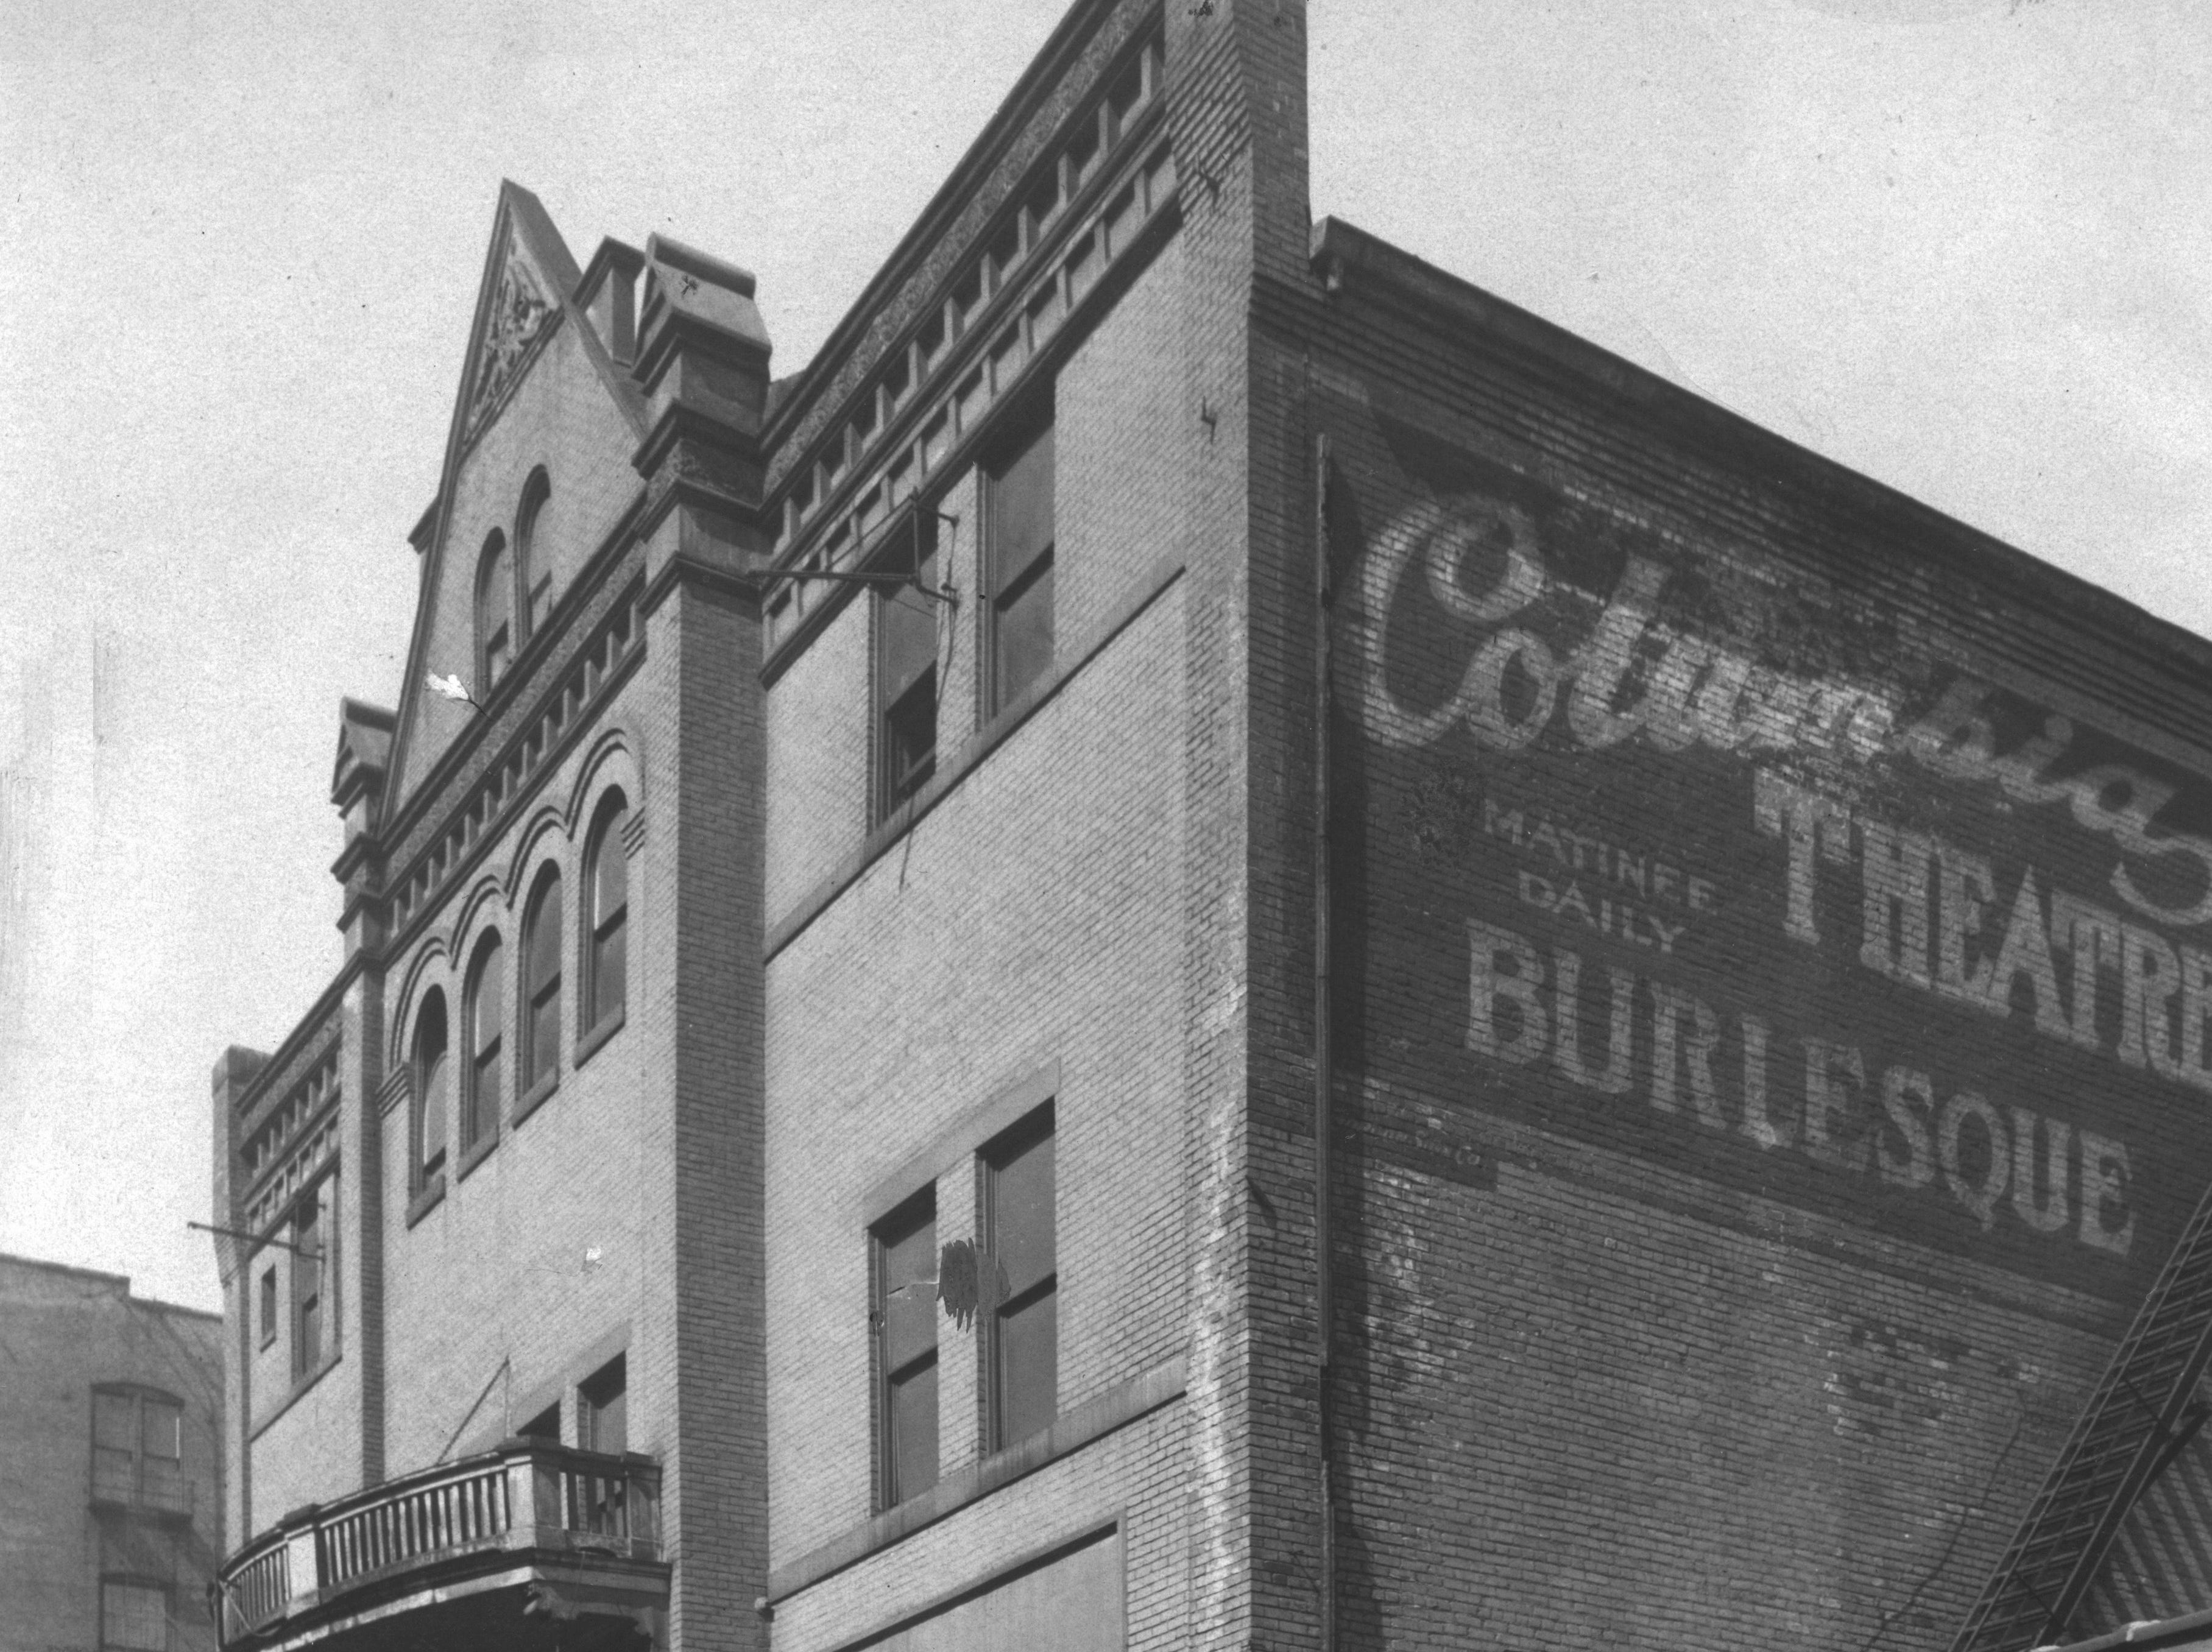 Shown here in 1923, long after it closed, the Empire Theater at Wabash and Talbott streets, was the only burlesque theater in Indiana during its heyday from 1892 to 1915.  During its last couple of years it was re-named the Columbia Theater.  In the 1920s it was converted into one of the city's first multi-floor parking garages.